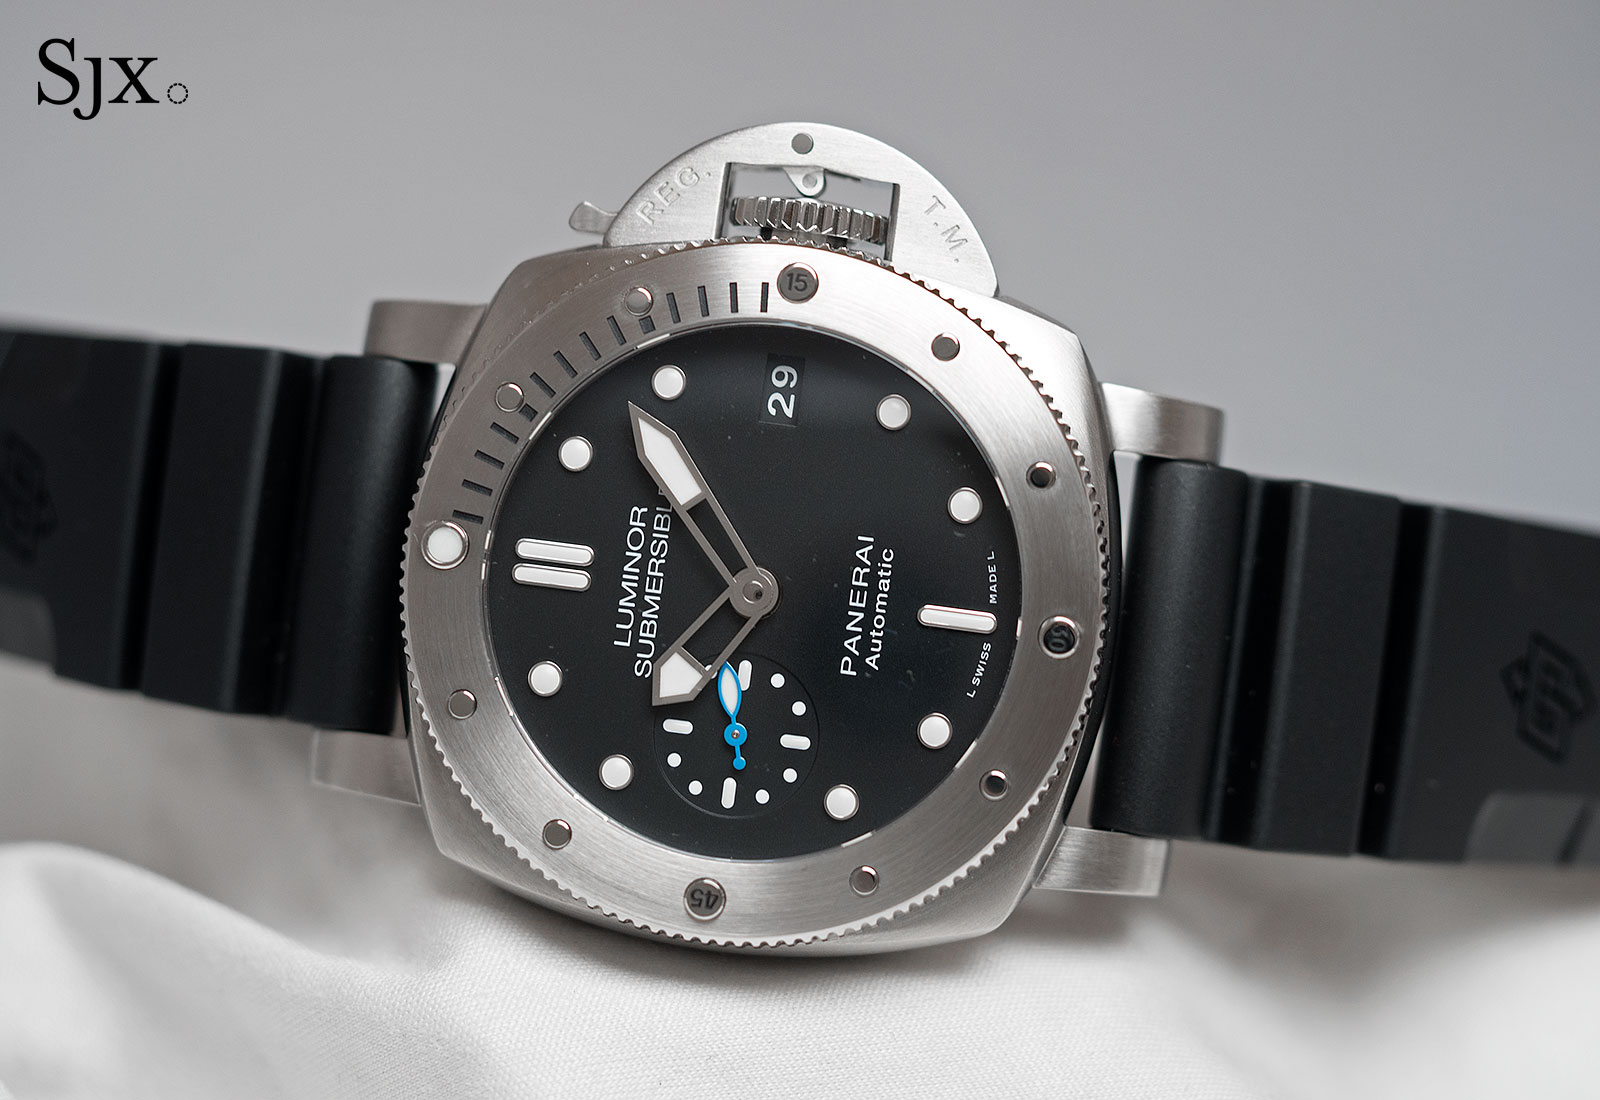 Panerai Luminor Submersible 1950 42mm PAM682